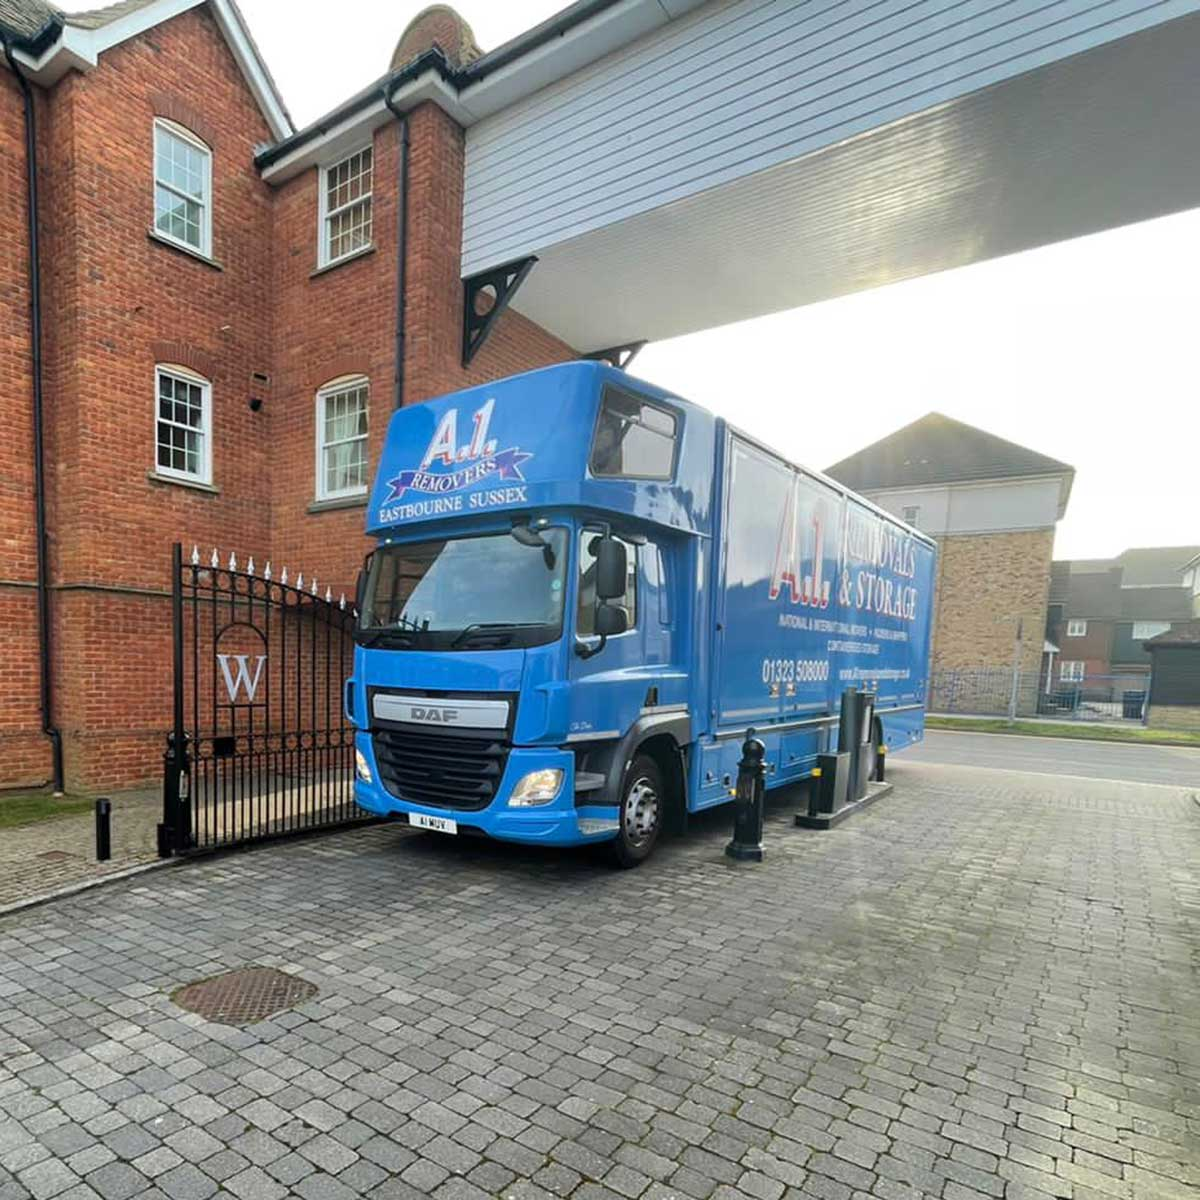 """A1 Removals van """"The Duke"""" arriving at a gated estate"""